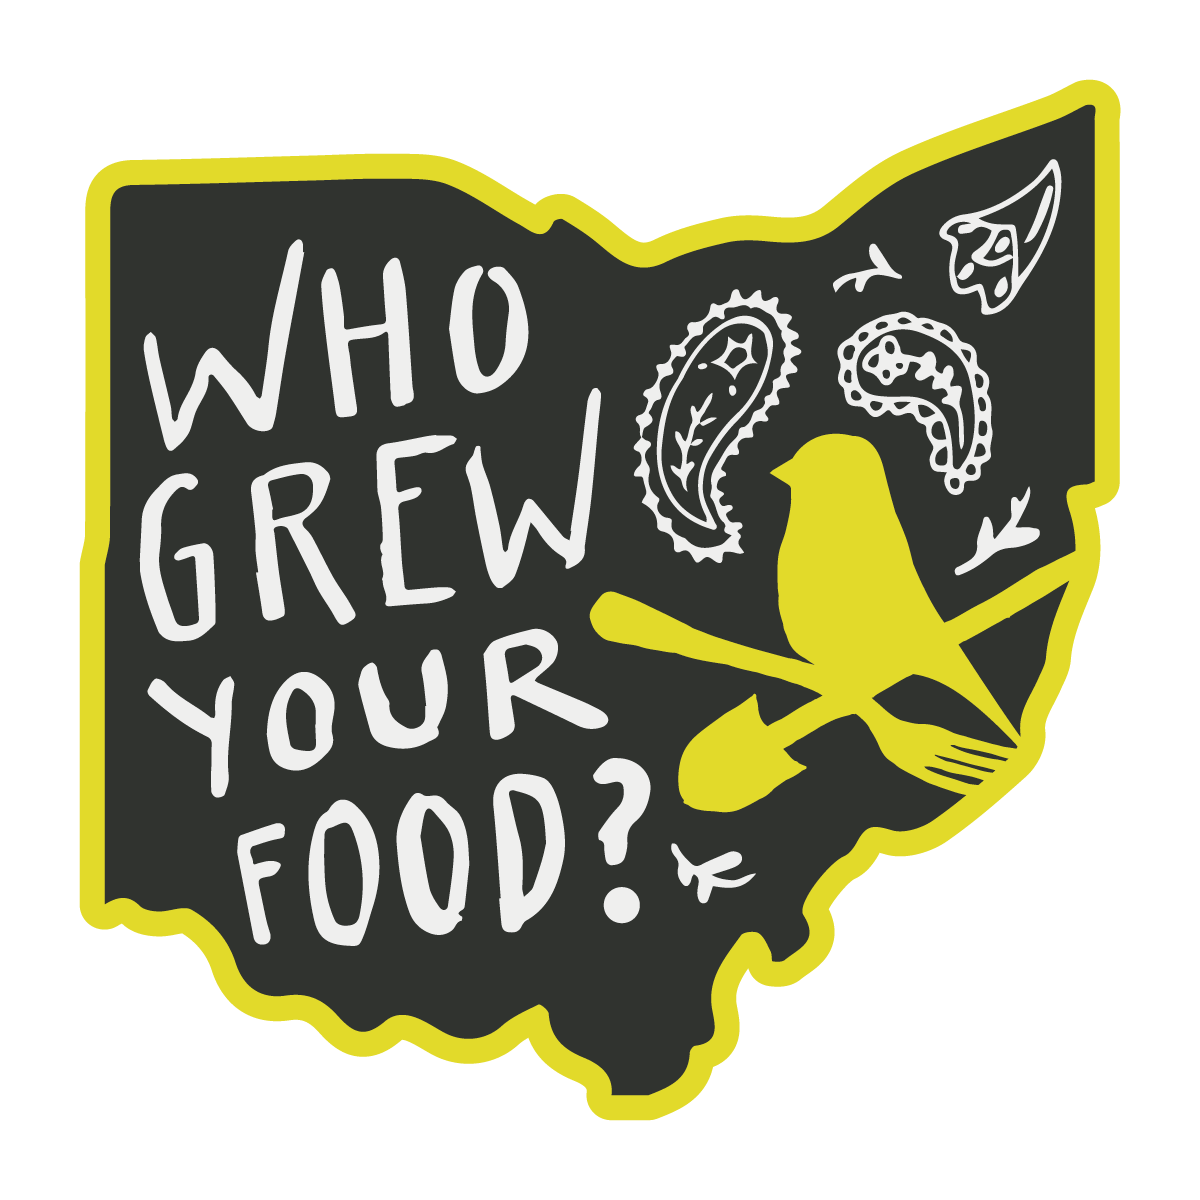 YELLOWBIRD_FOODSHED_WHO_GREW_YOUR_FOOD.png